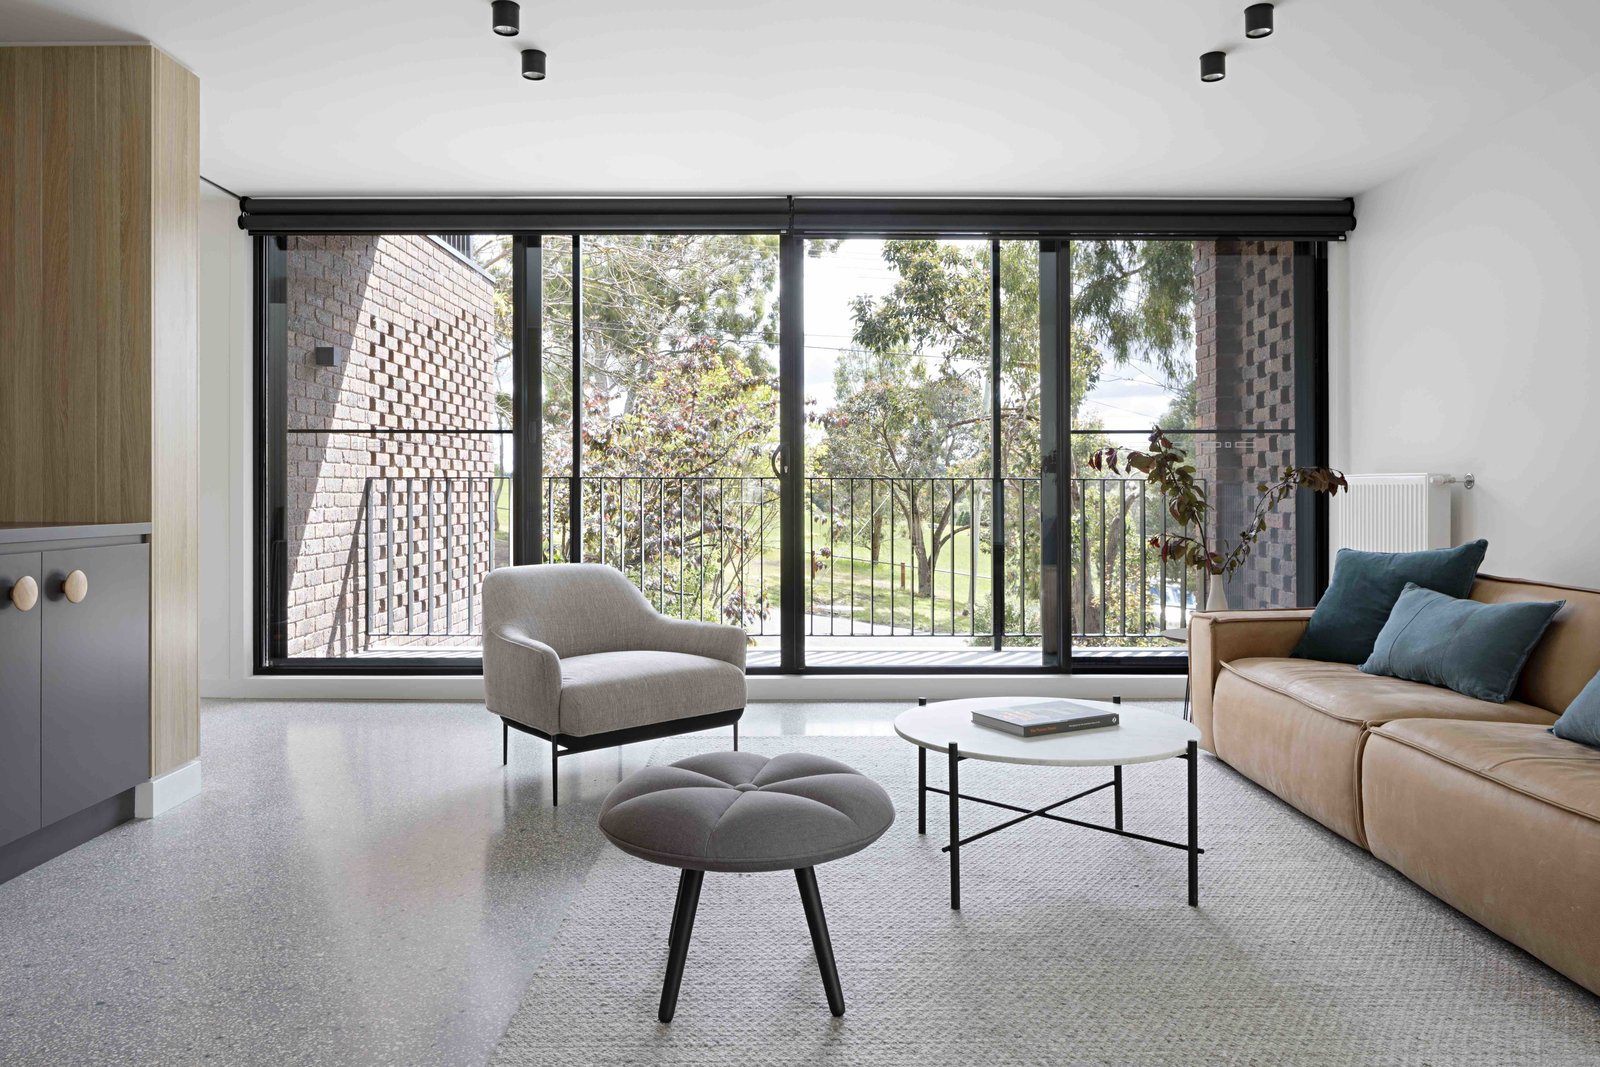 Living Room, Sofa, Coffee Tables, Chair, Ottomans, Rug Floor, and Ceiling Lighting  Photo 10 of 17 in A Remodel Turns a Dark and Choppy House in Melbourne Into a Bright, Flexible Family Home